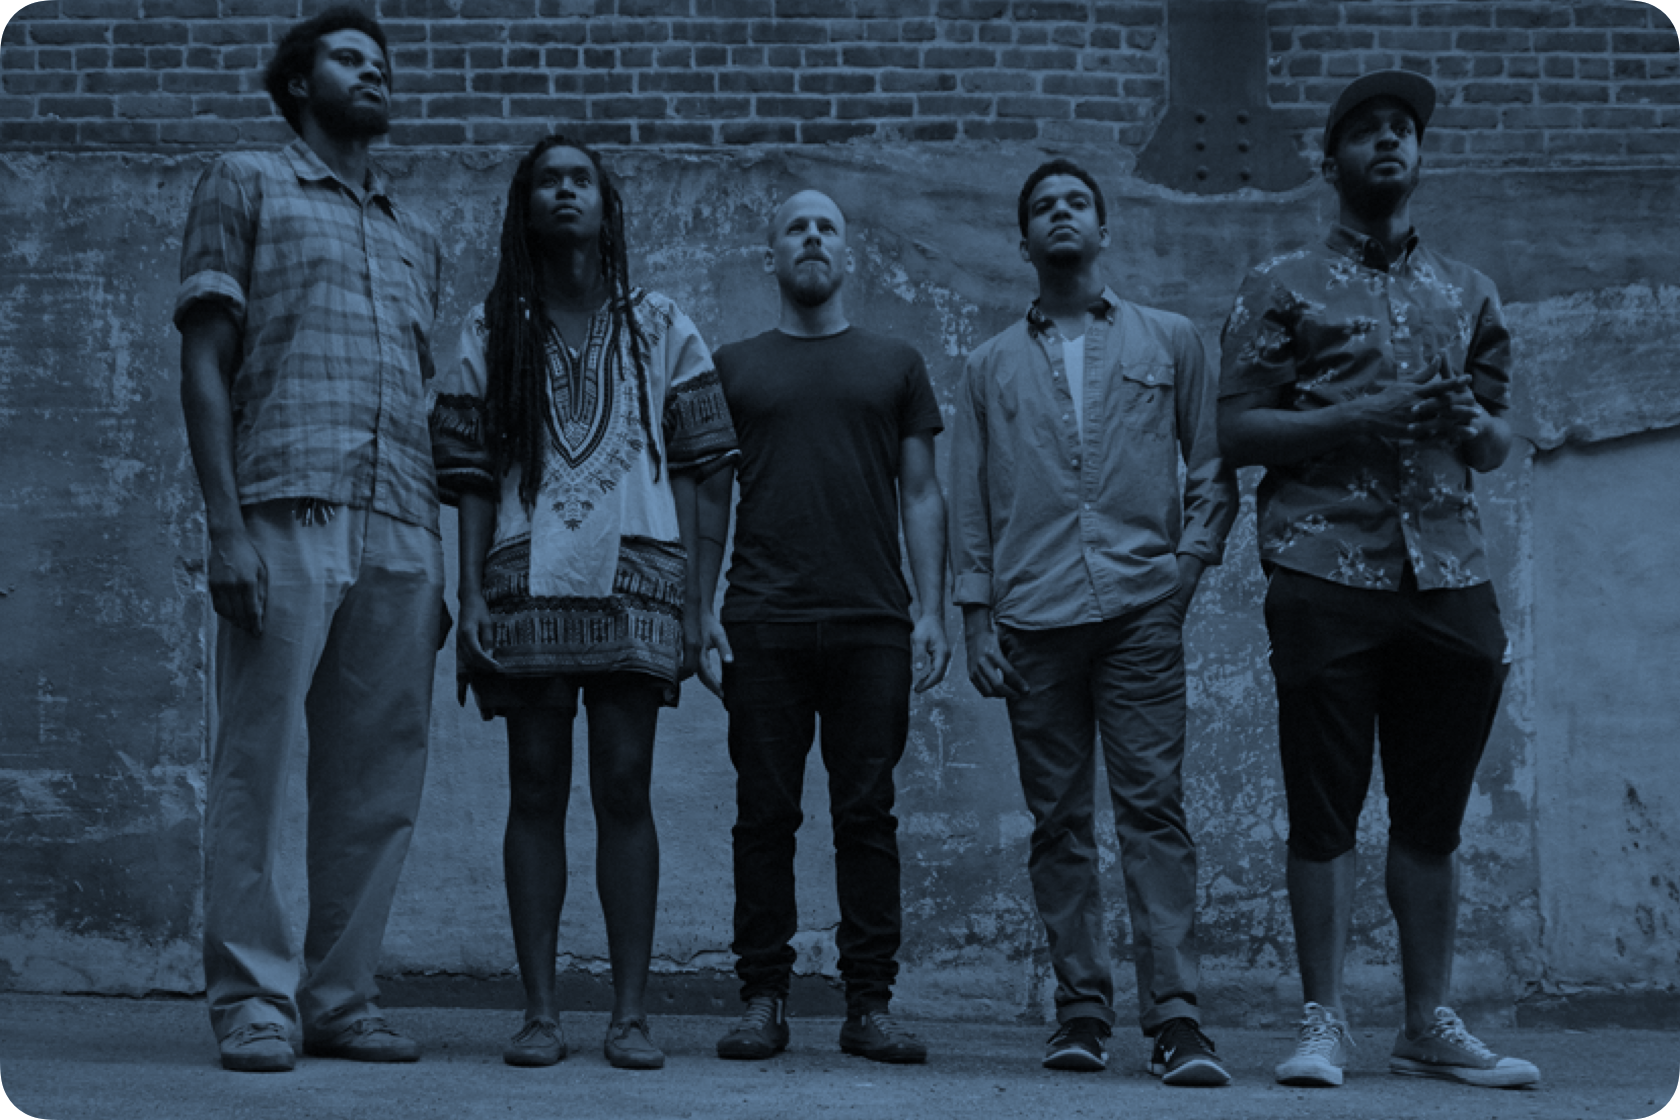 Members of Irreversible Entanglements lined up